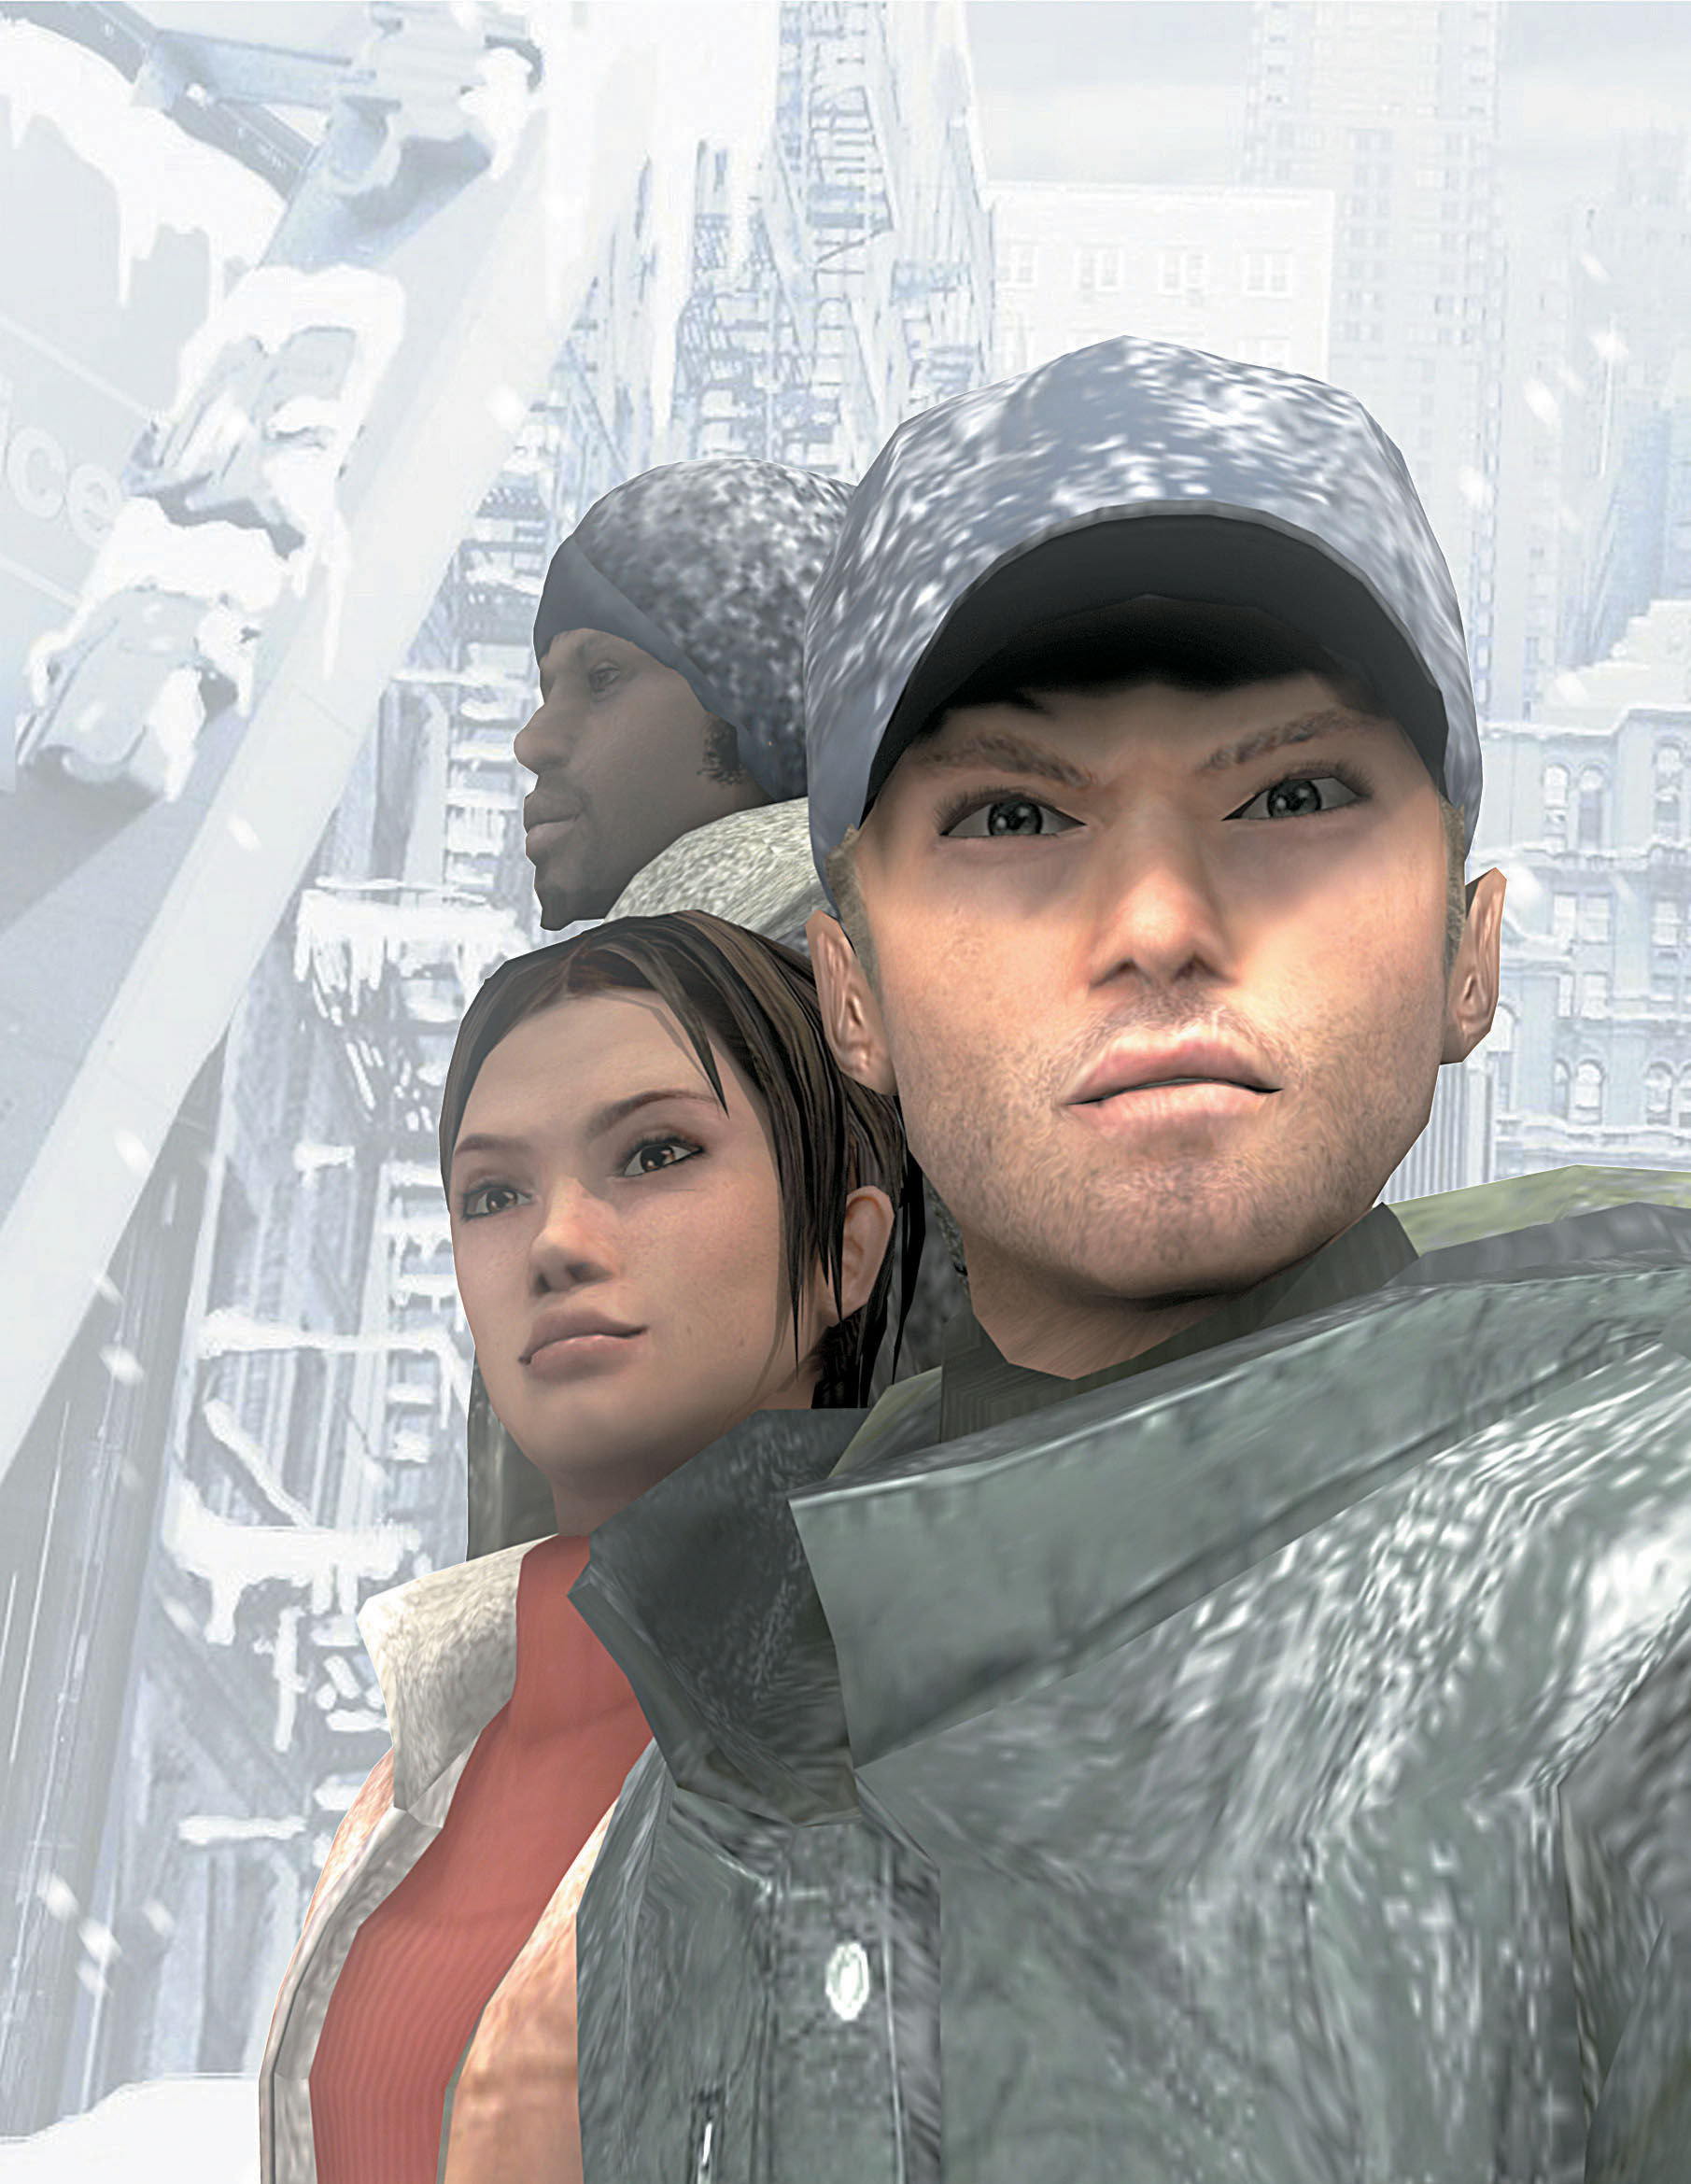 Indigo_Prophecy_Render_2